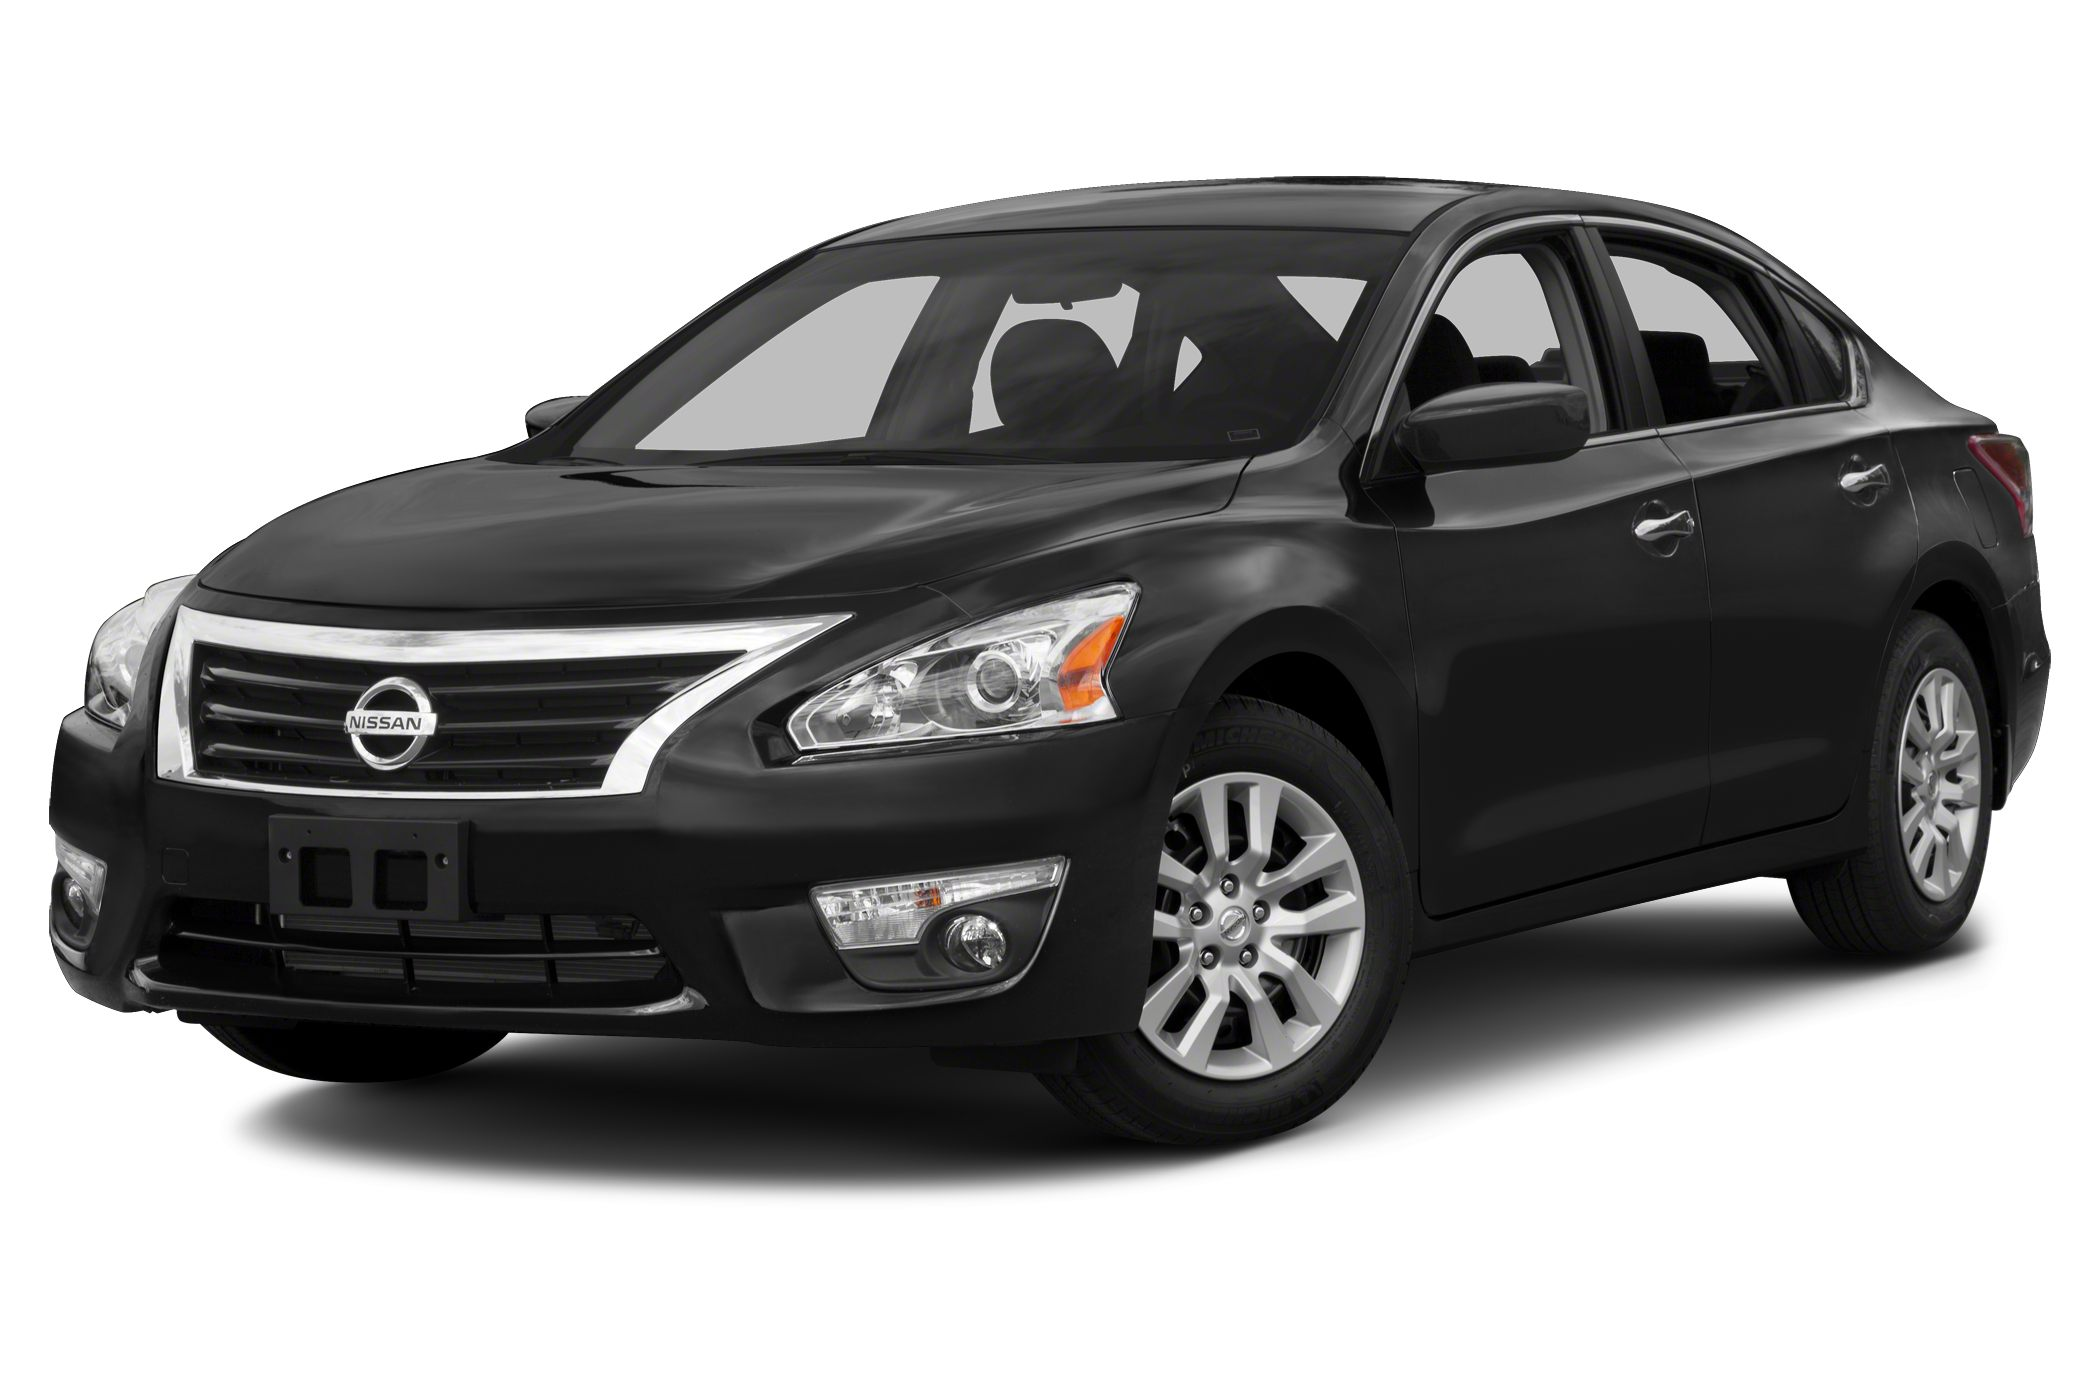 2013 Nissan Altima 25 S We have several 2013 Altimas to choose from at this price point Number